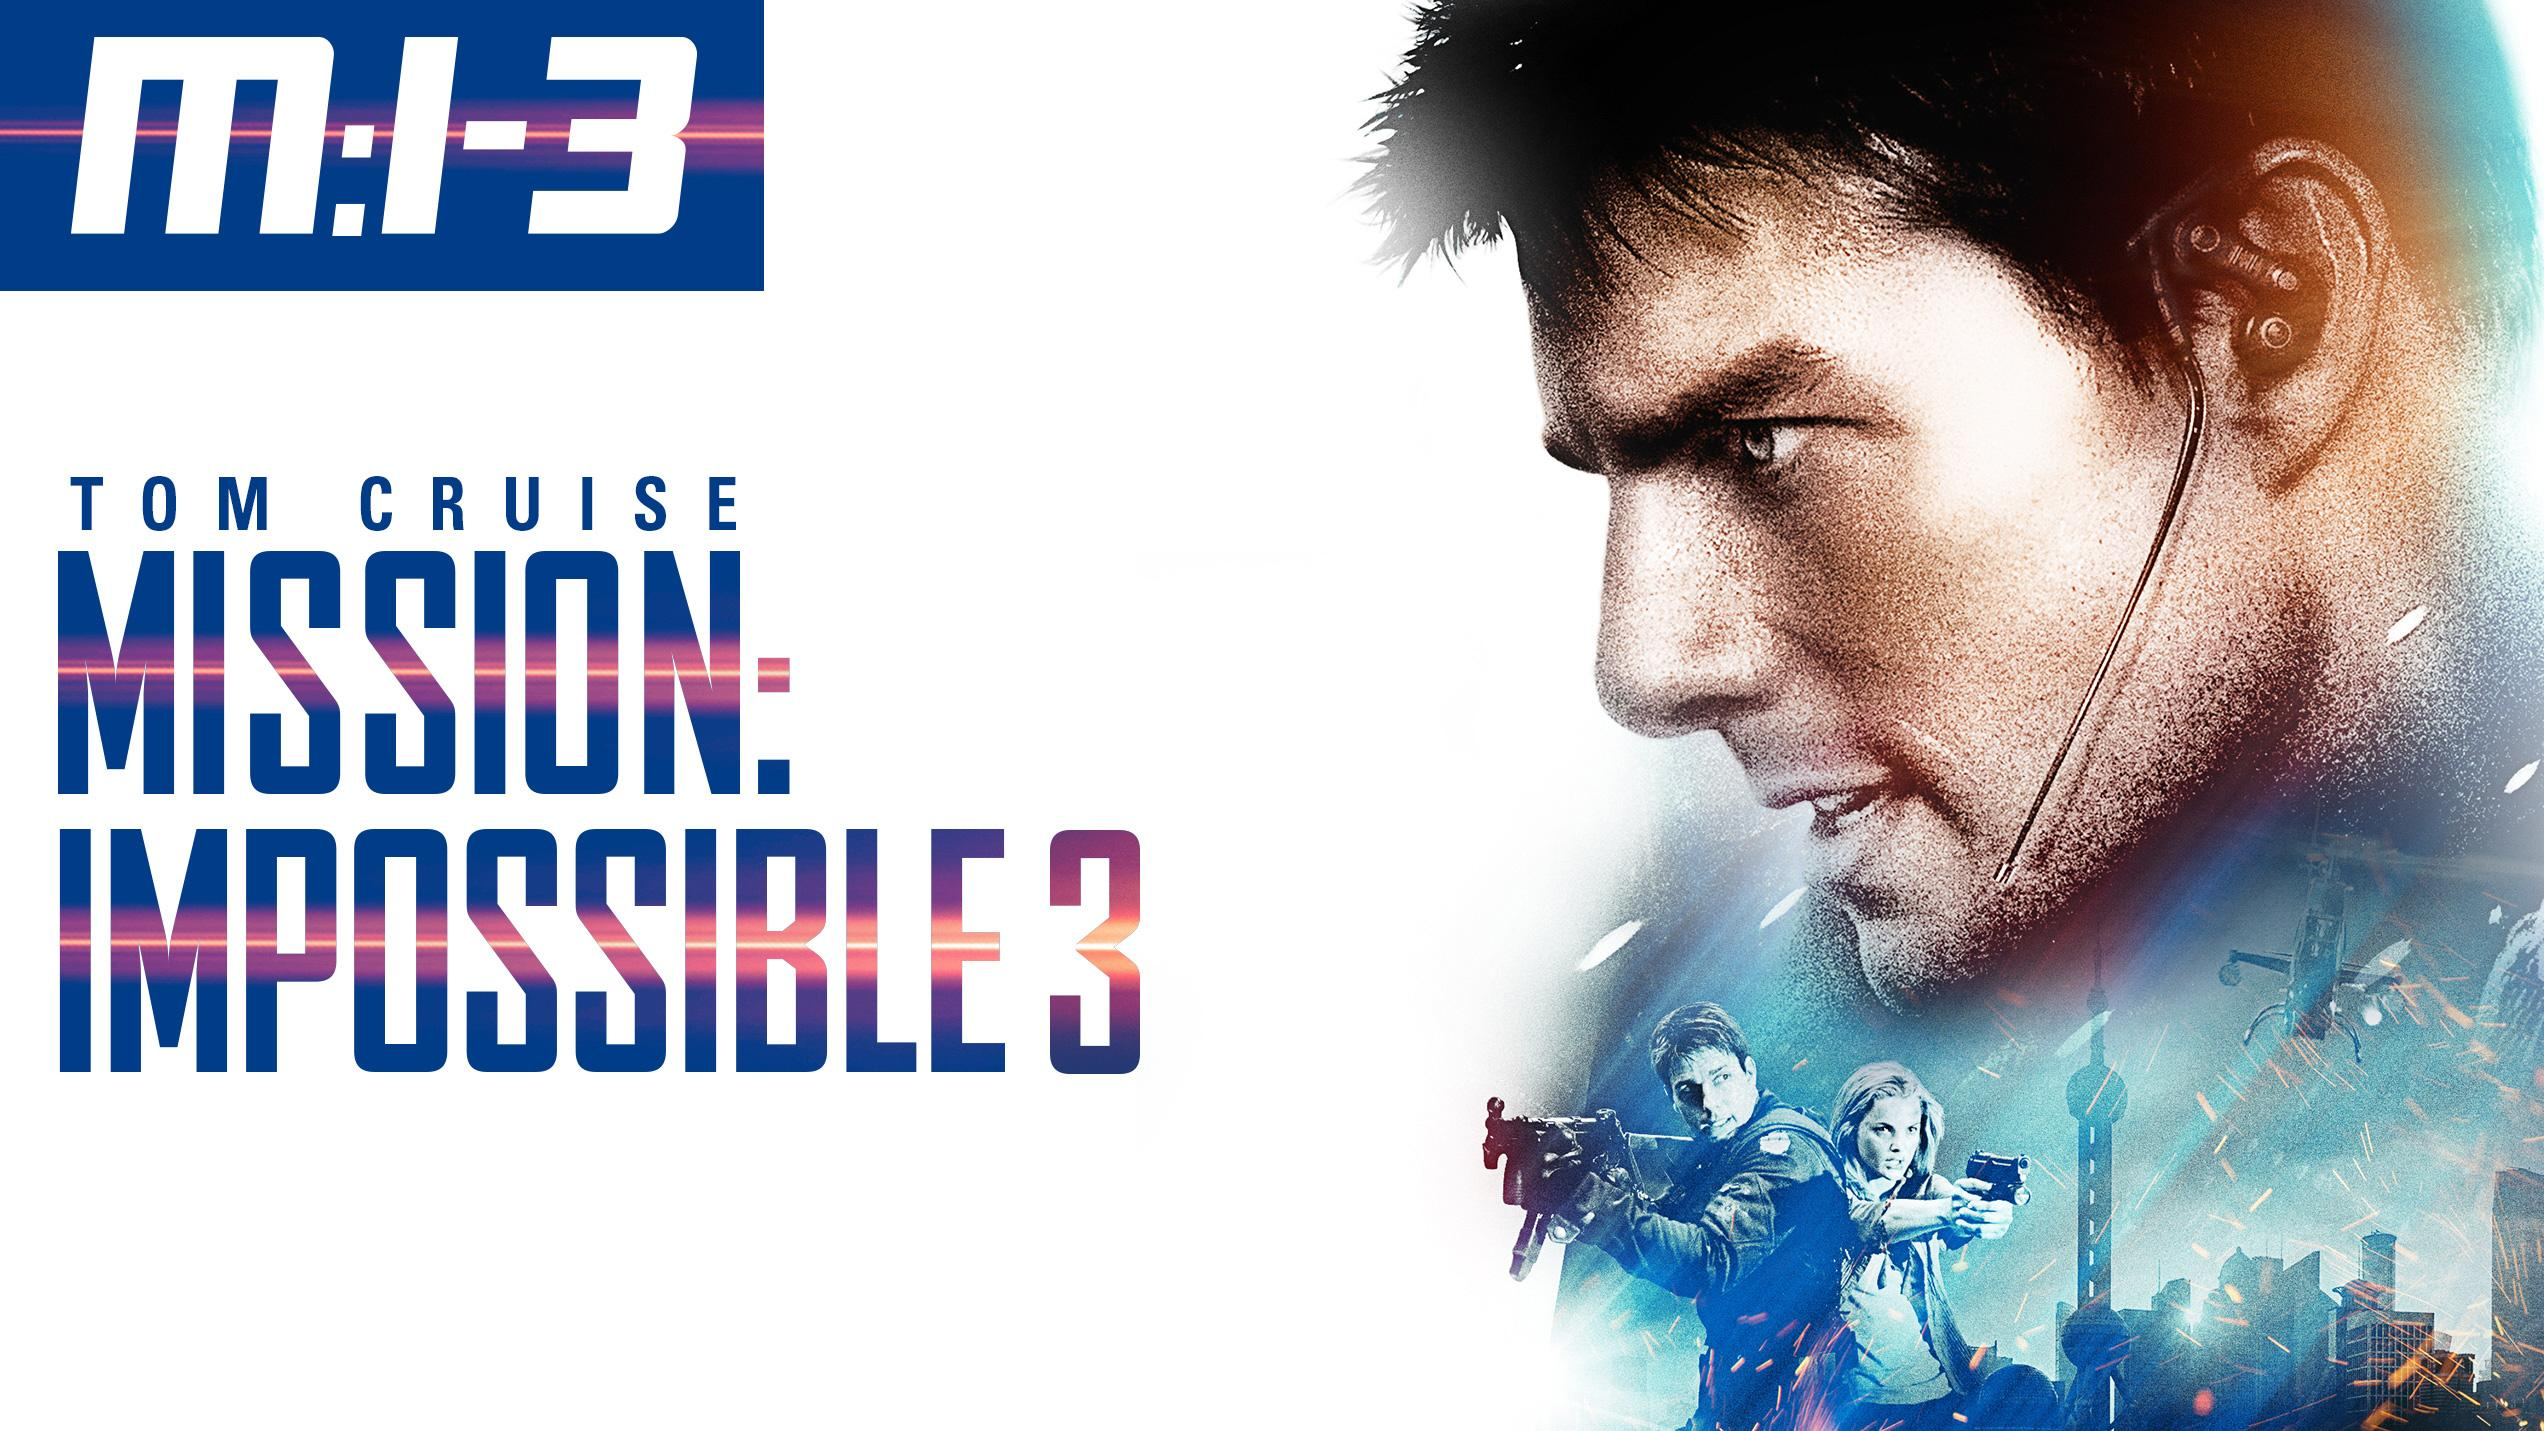 Stream And Watch Mission Impossible Iii Online Sling Tv